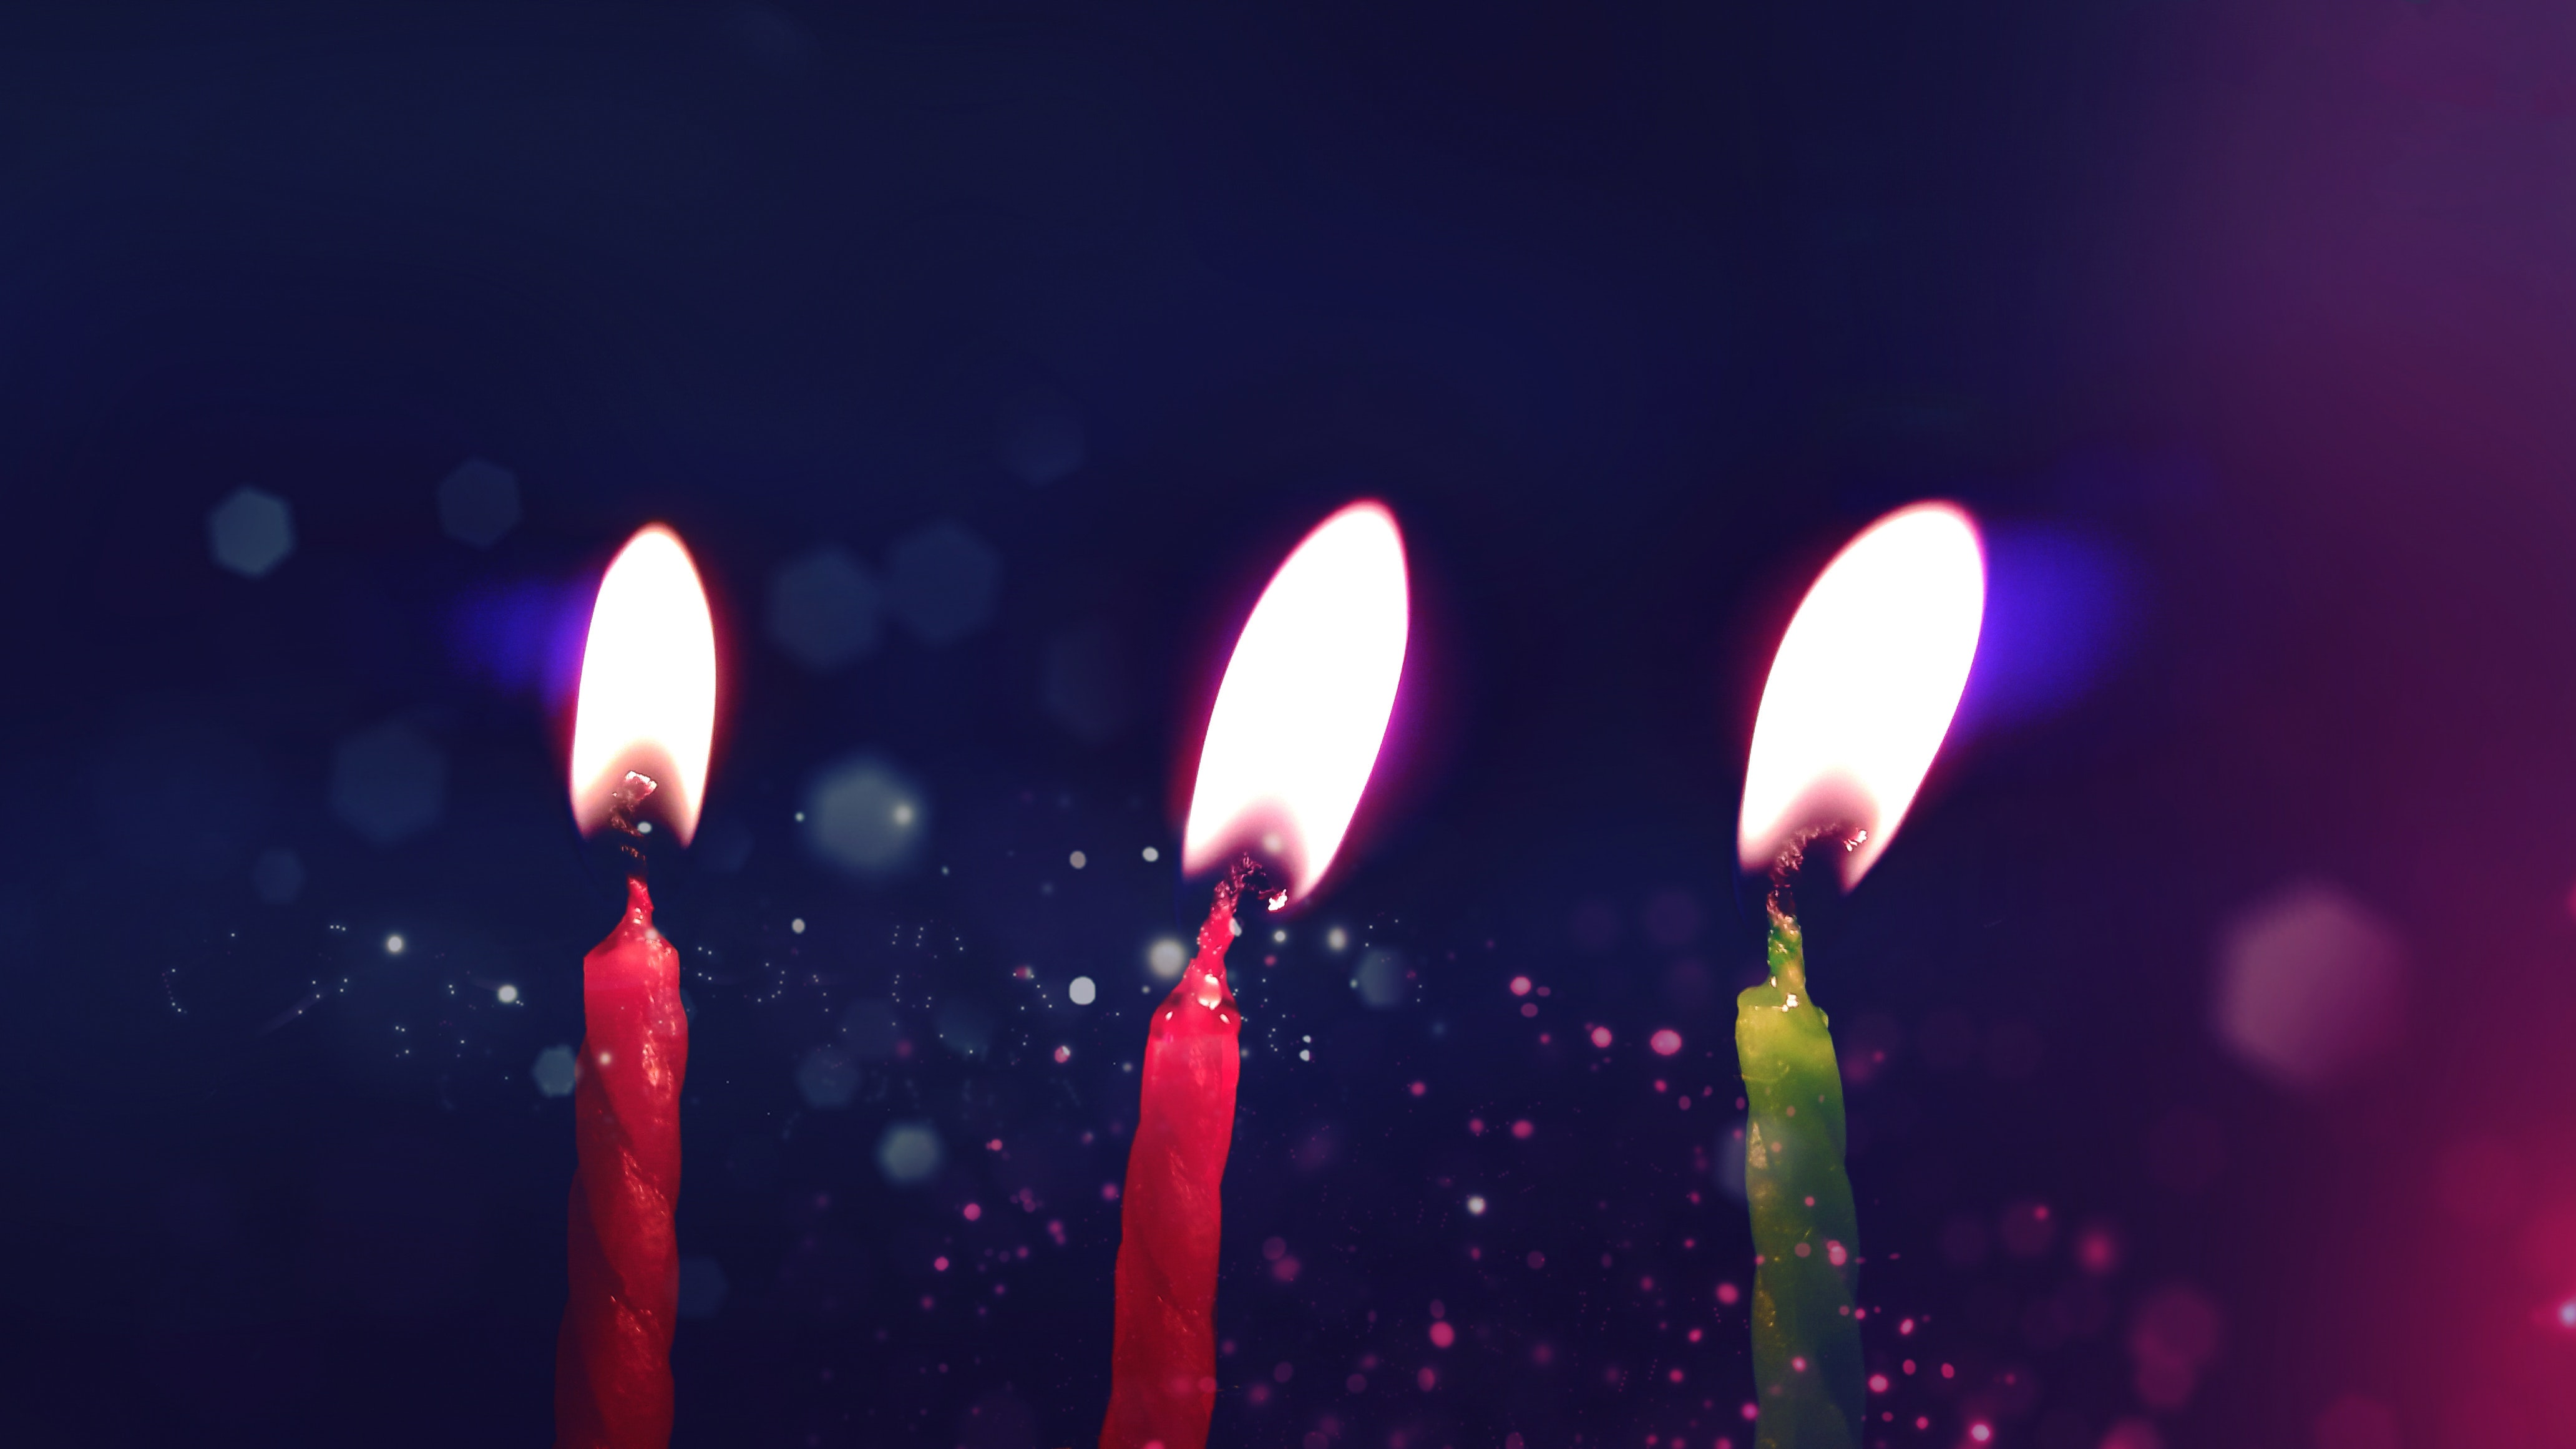 1920x1080 Birthday Candle Lights 4k Laptop Full Hd 1080p Hd 4k Wallpapers Images Backgrounds Photos And Pictures